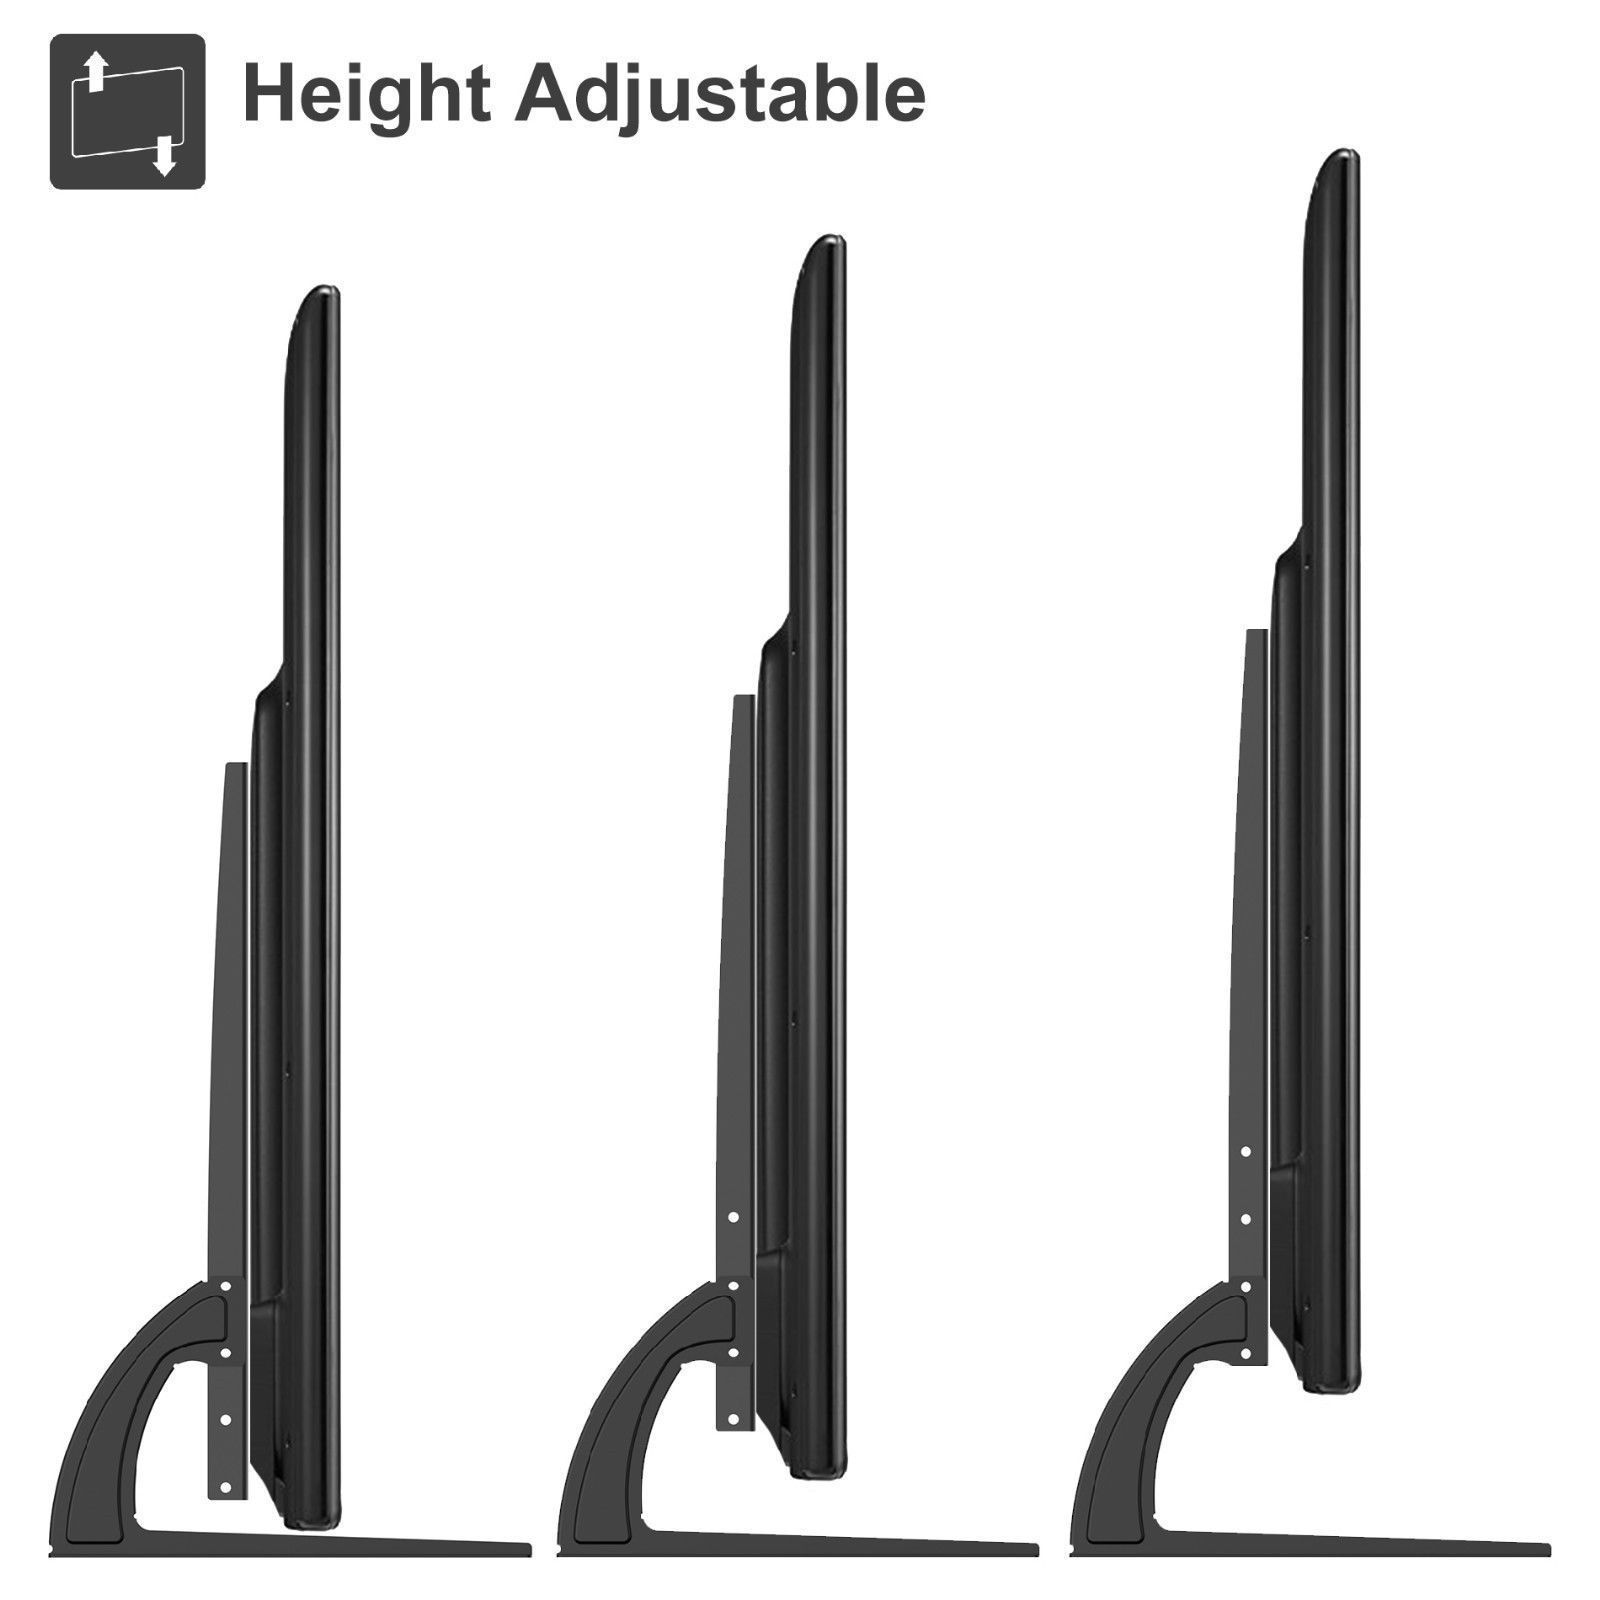 Universal Table Top TV Stand Legs for LG 42LF5600-UB Height Adjustable